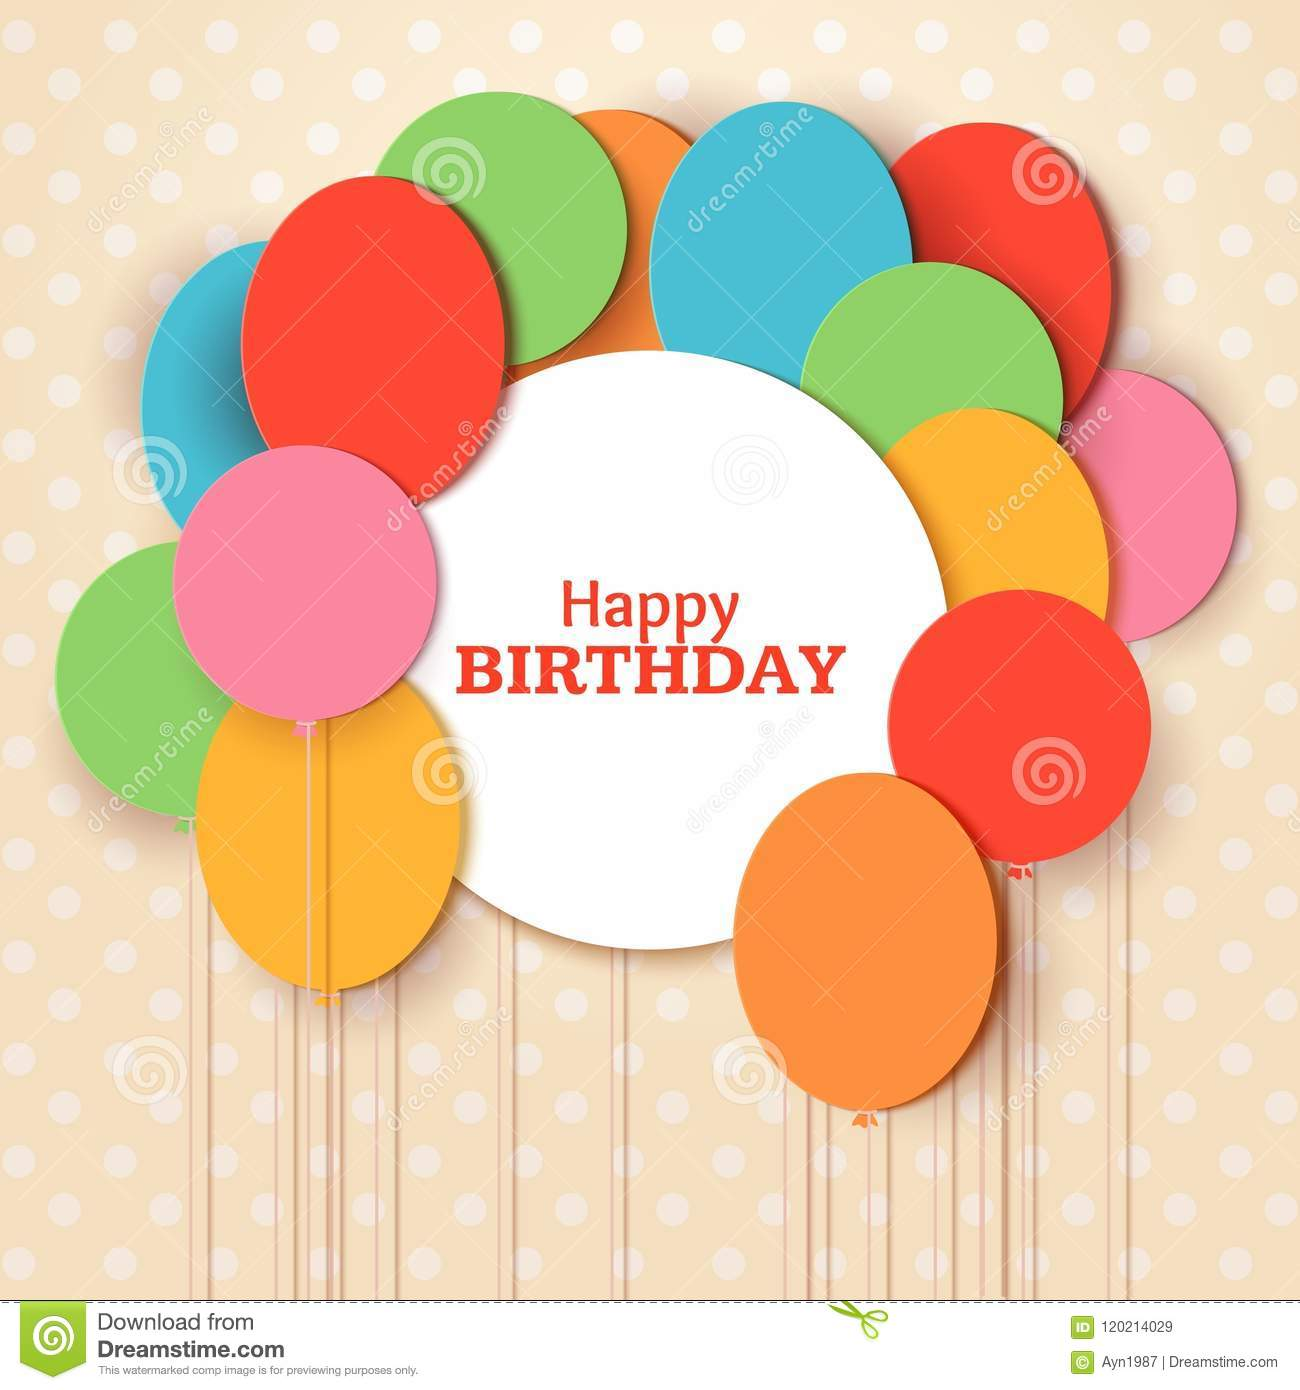 Happy Birthday greeting card template with white round frame. Flying paper cut balloons on blue background. Vector